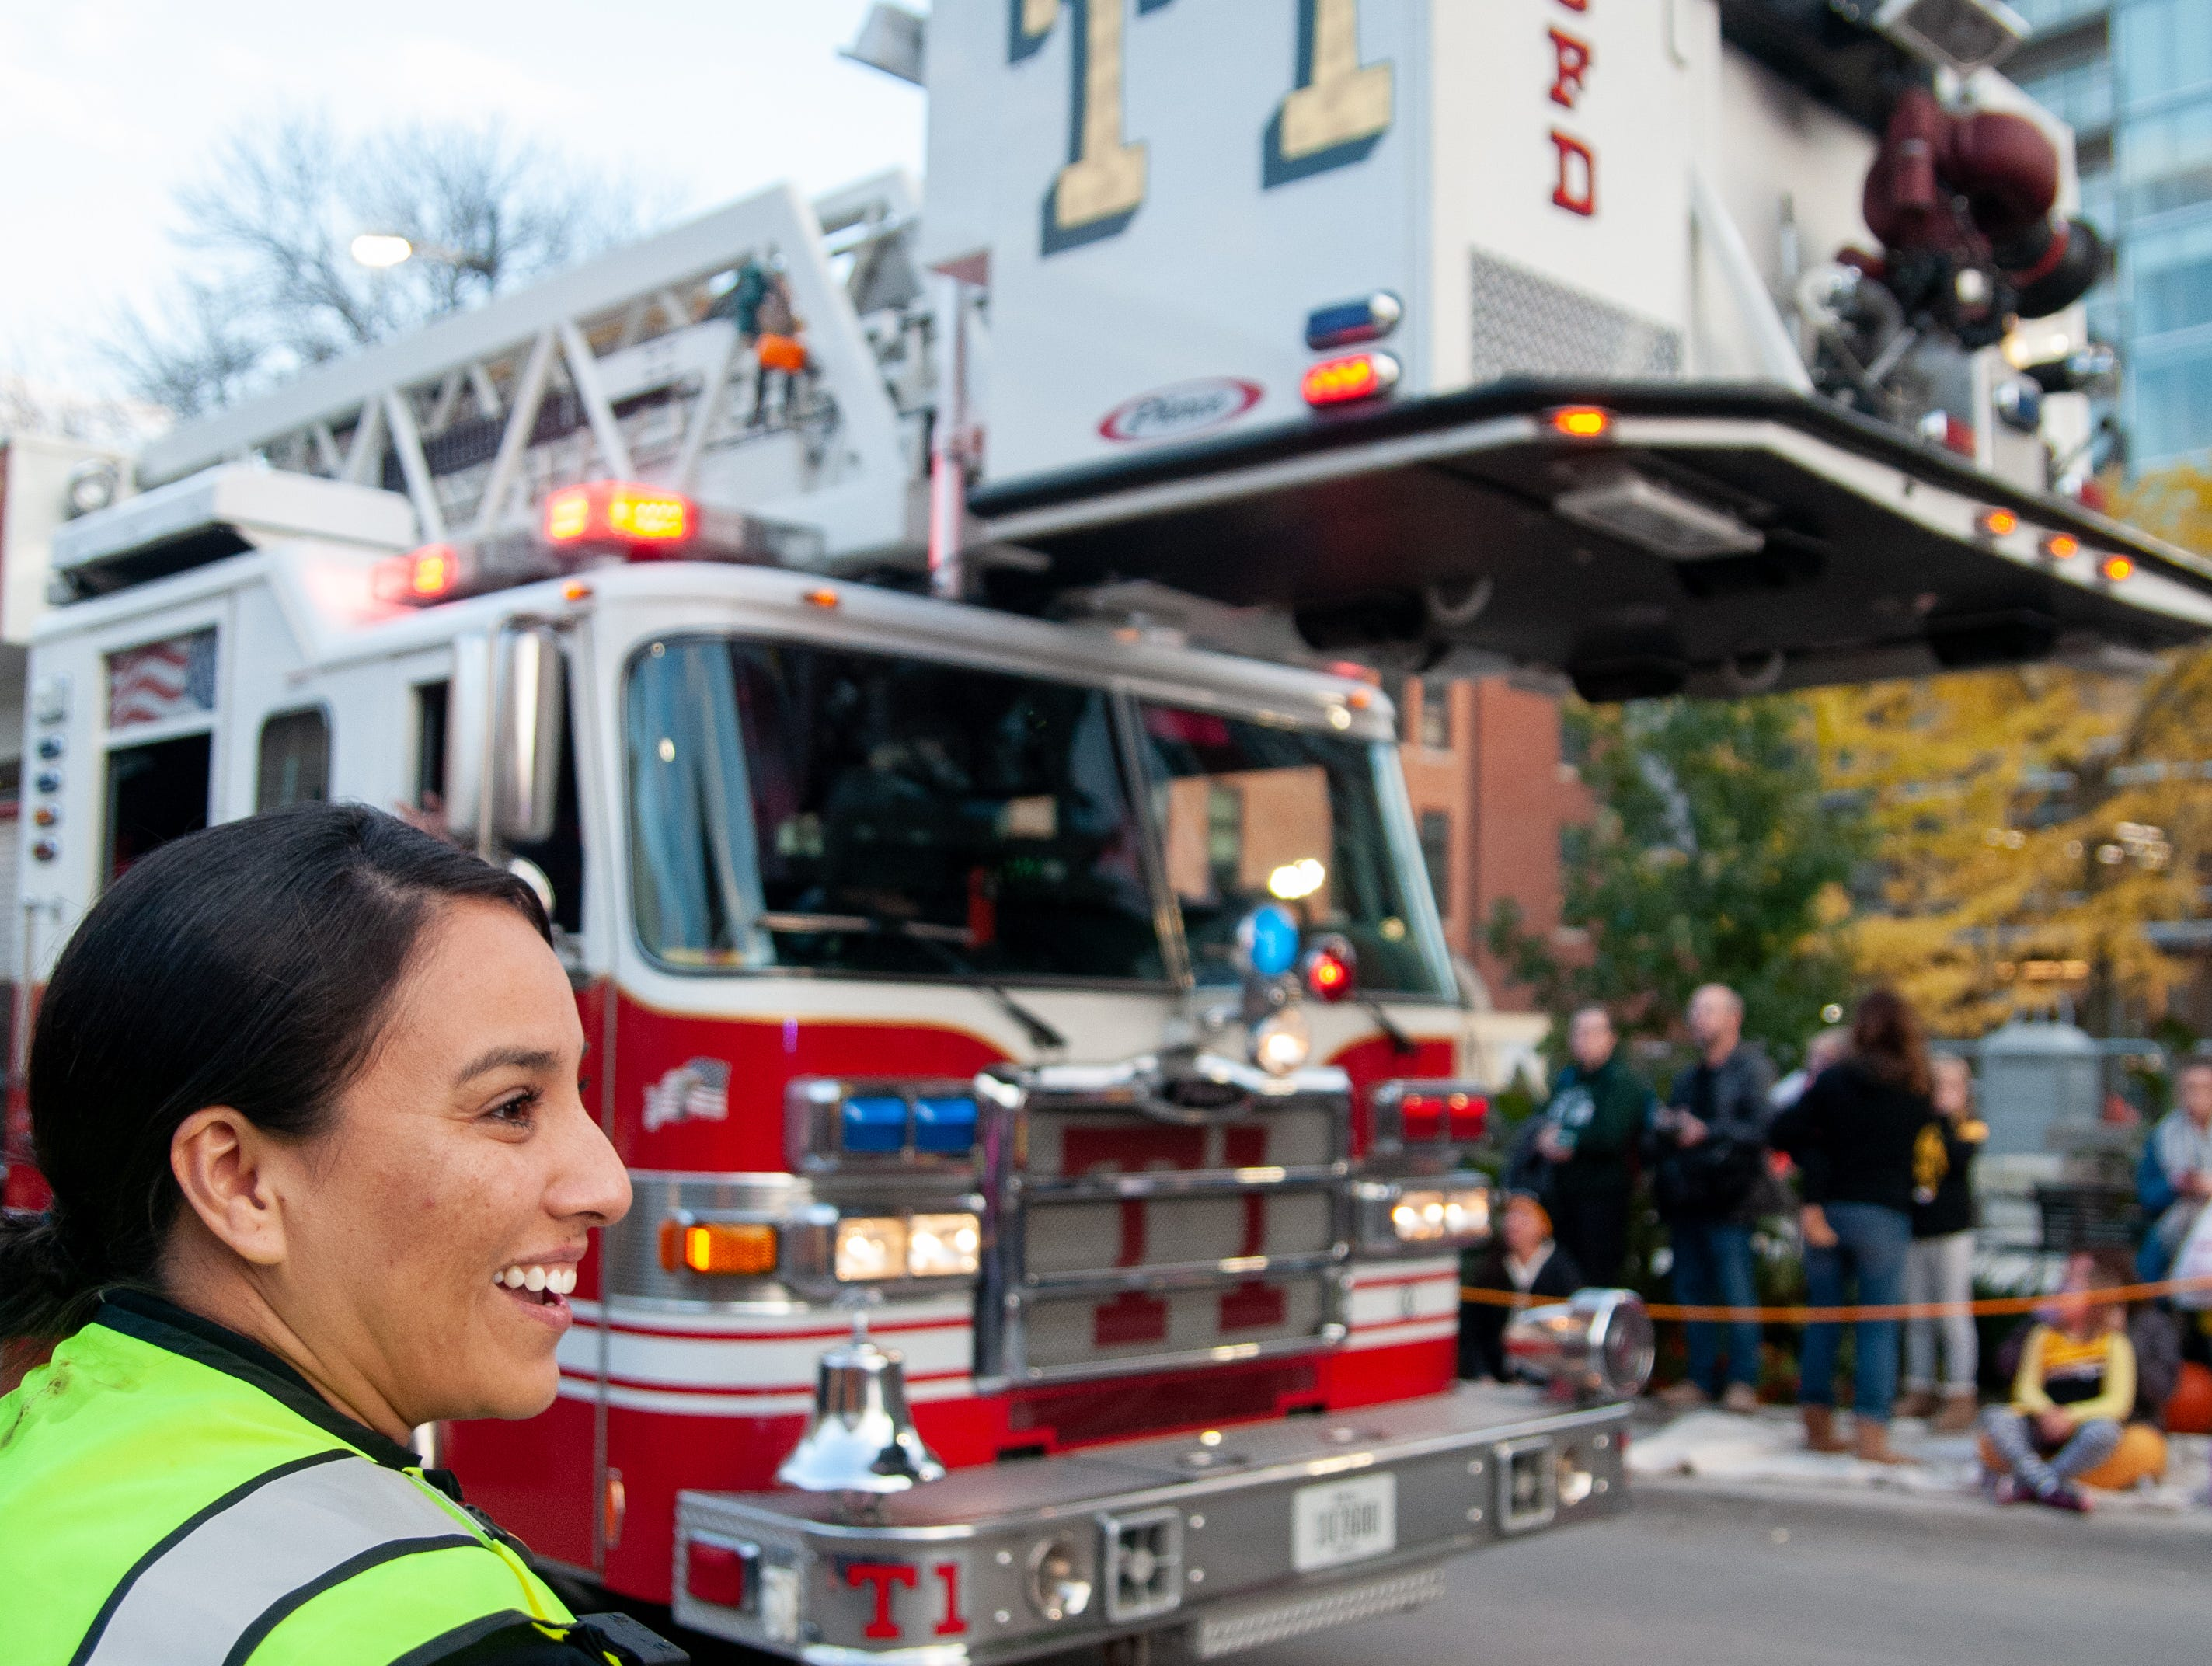 The Iowa City Fire Department leads the 2018 Homecoming parade, Friday, Oct. 19, 2018, in Iowa City.